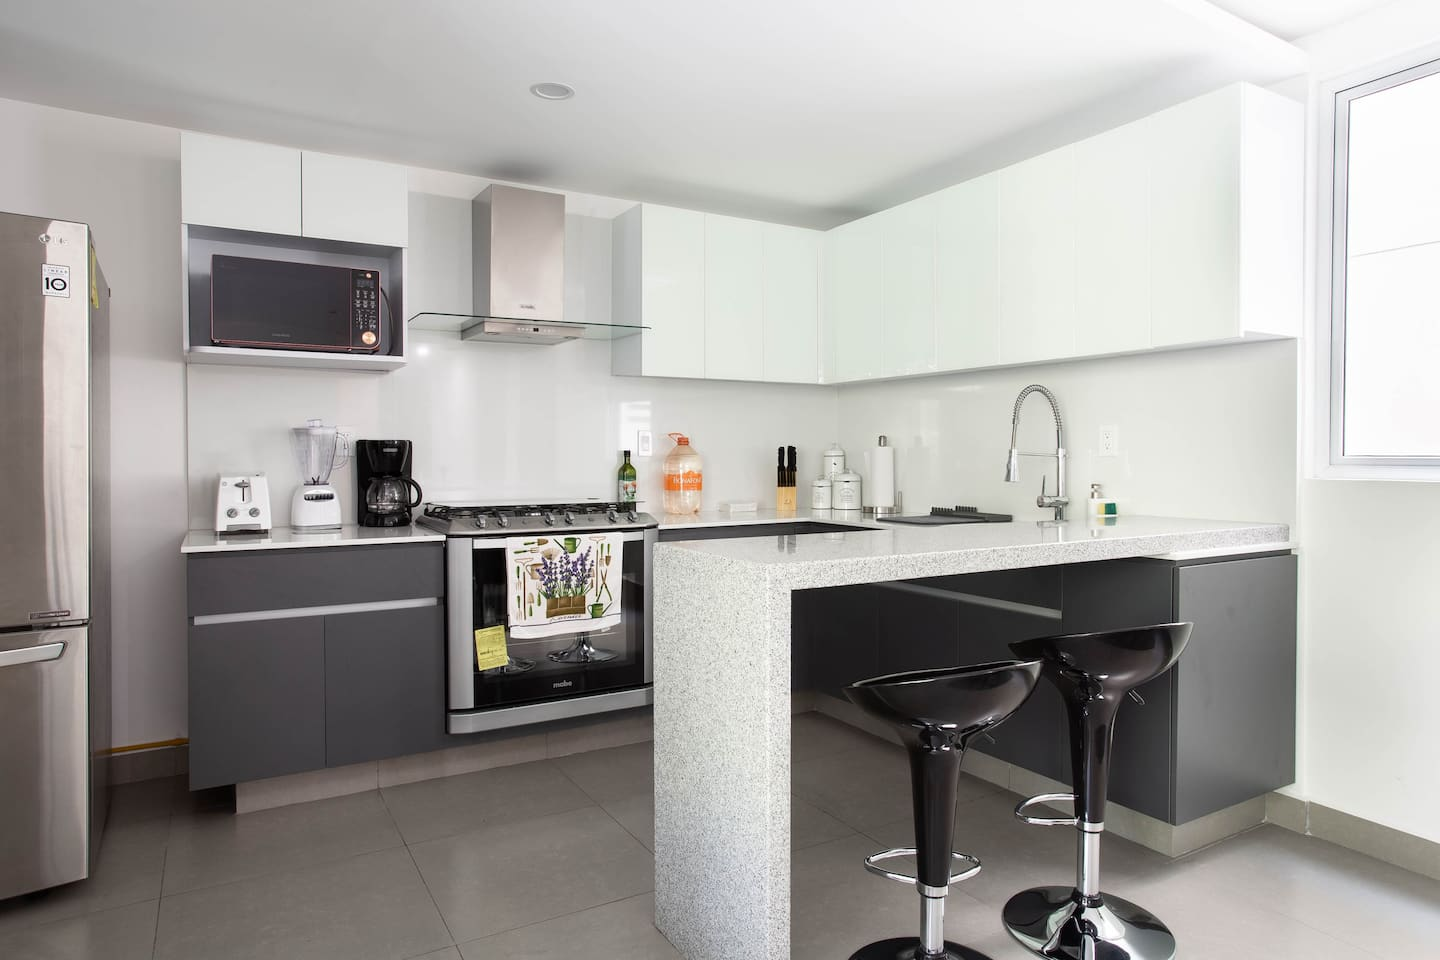 VRBO Mexico City: Modern kitchen with two bar stools for seating